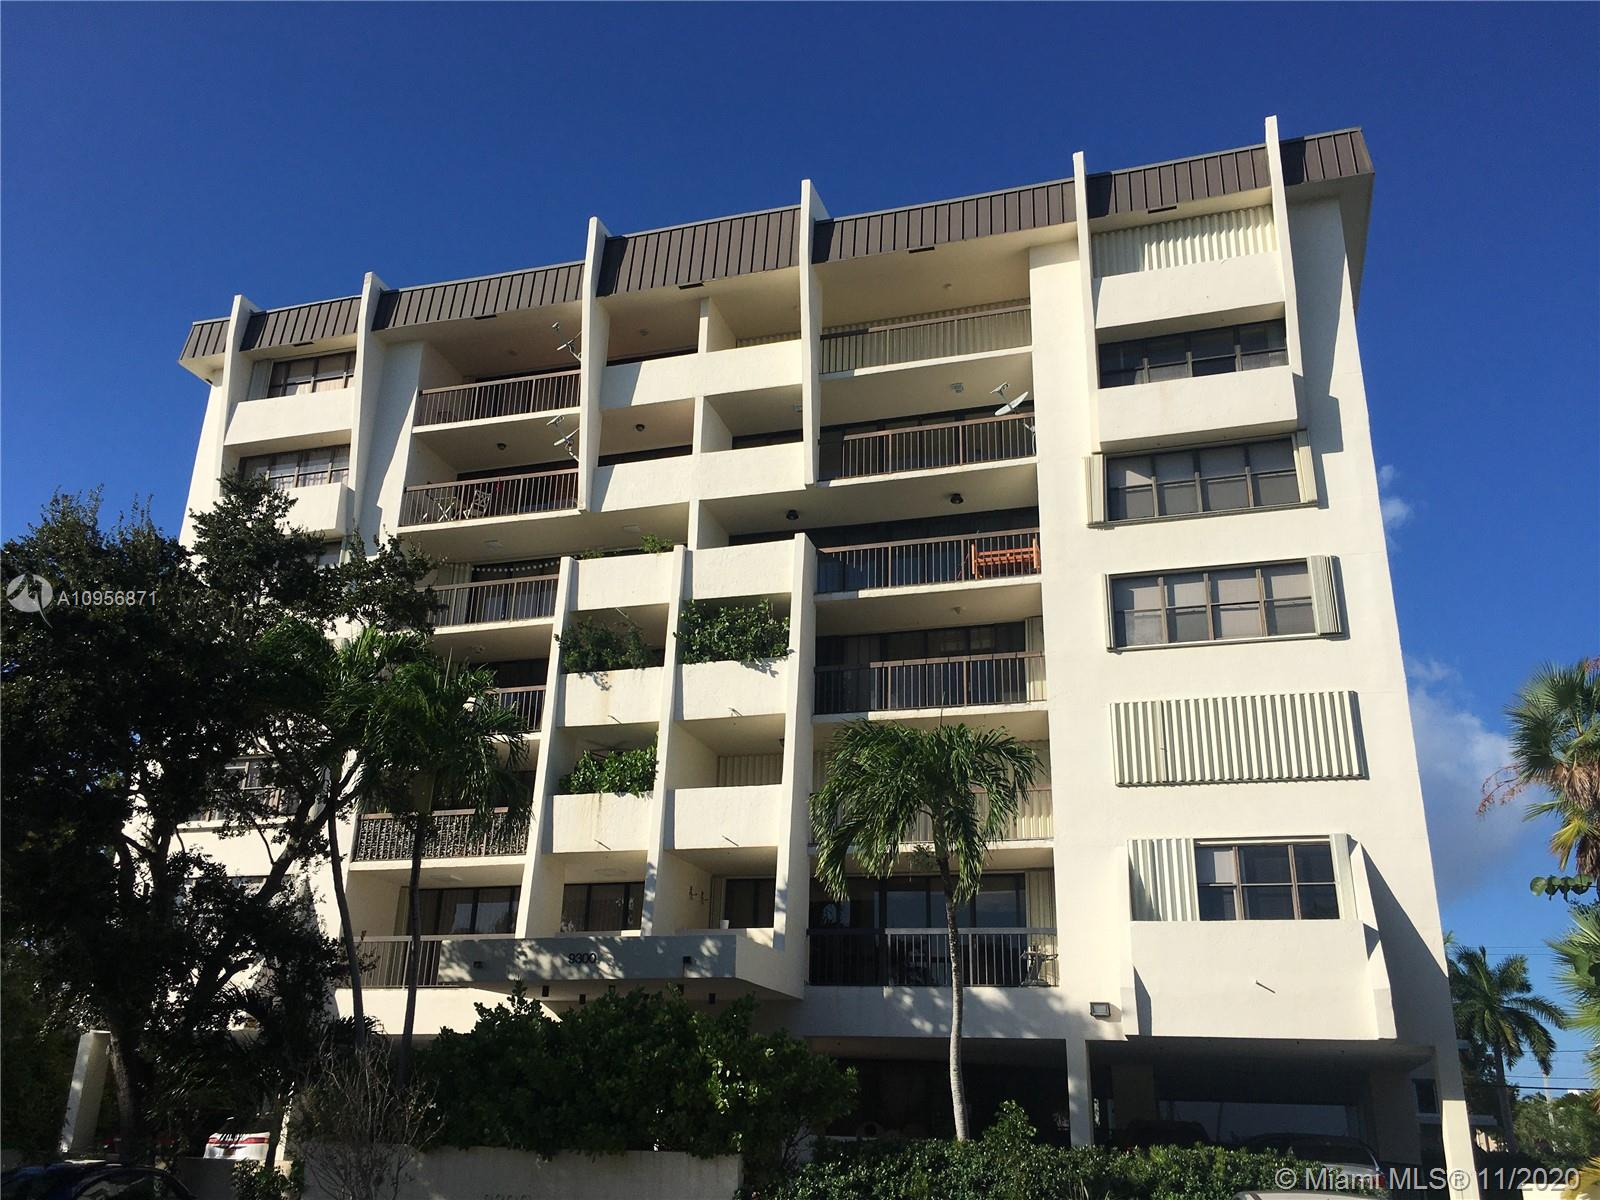 Spacious and bright 2 Bed / 2.5 Bath 1,600 Sq Ft corner unit in prestigious Bay Harbor Island. Featuring master bedroom with walk in closet, Large Living room & Dining room, Kitchen with eat in nook, wood tile throughout, hurricane accordion shutters and oversize balcony facing east for wonderful sunrise views.  Washer and dryer in unit. Comes with a large secure storage room & two assigned parking spaces. Well maintained Building with many amenities, including Secured lobby, pool & BBQ area.  Four units per floor.  Low maintenance.  Walking distance to Bal Harbour Shops, school, restaurants, House of Worship & the beach.  Unit Priced to sell.